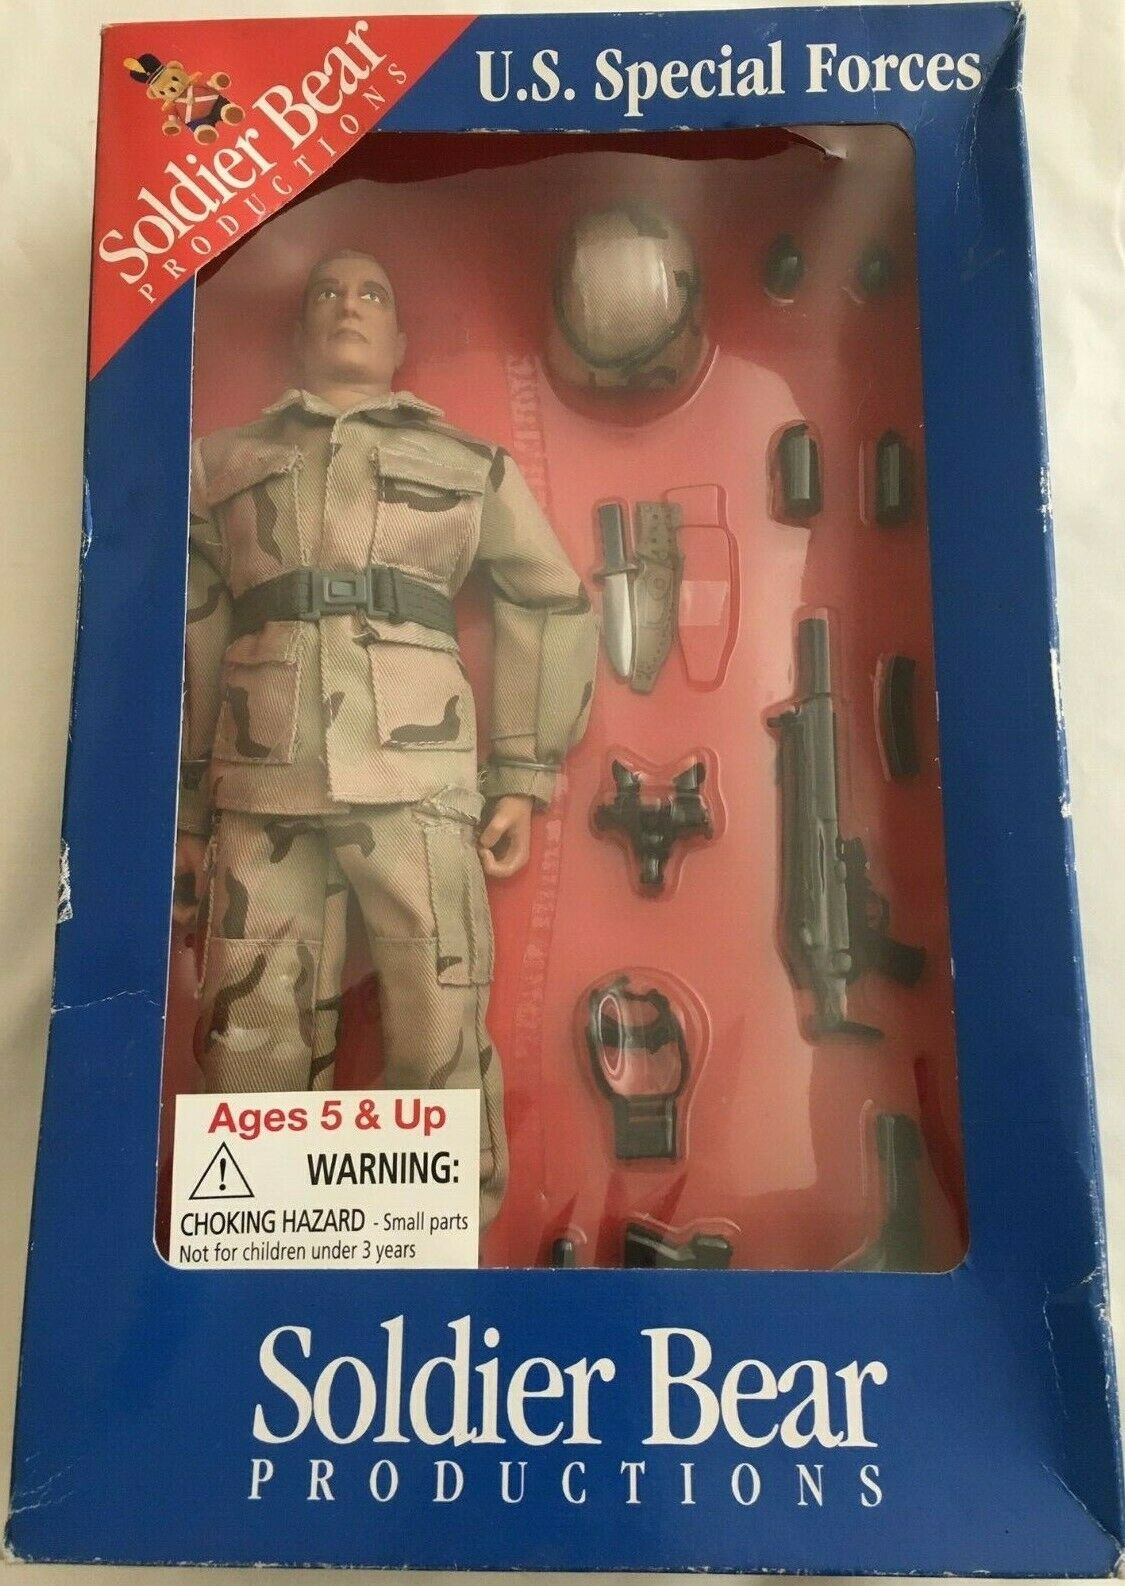 AAFES SOLDIER BEAR PRODUCTIONS US SPECIAL FORCES ULTIMATE SOLDIER W ACCESSORIES